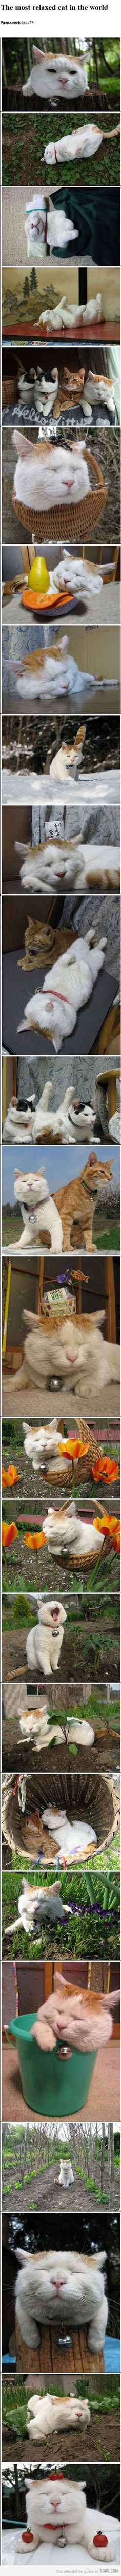 This kitty (the attitude) reminds me of Ray's cat Pumpkin lol.